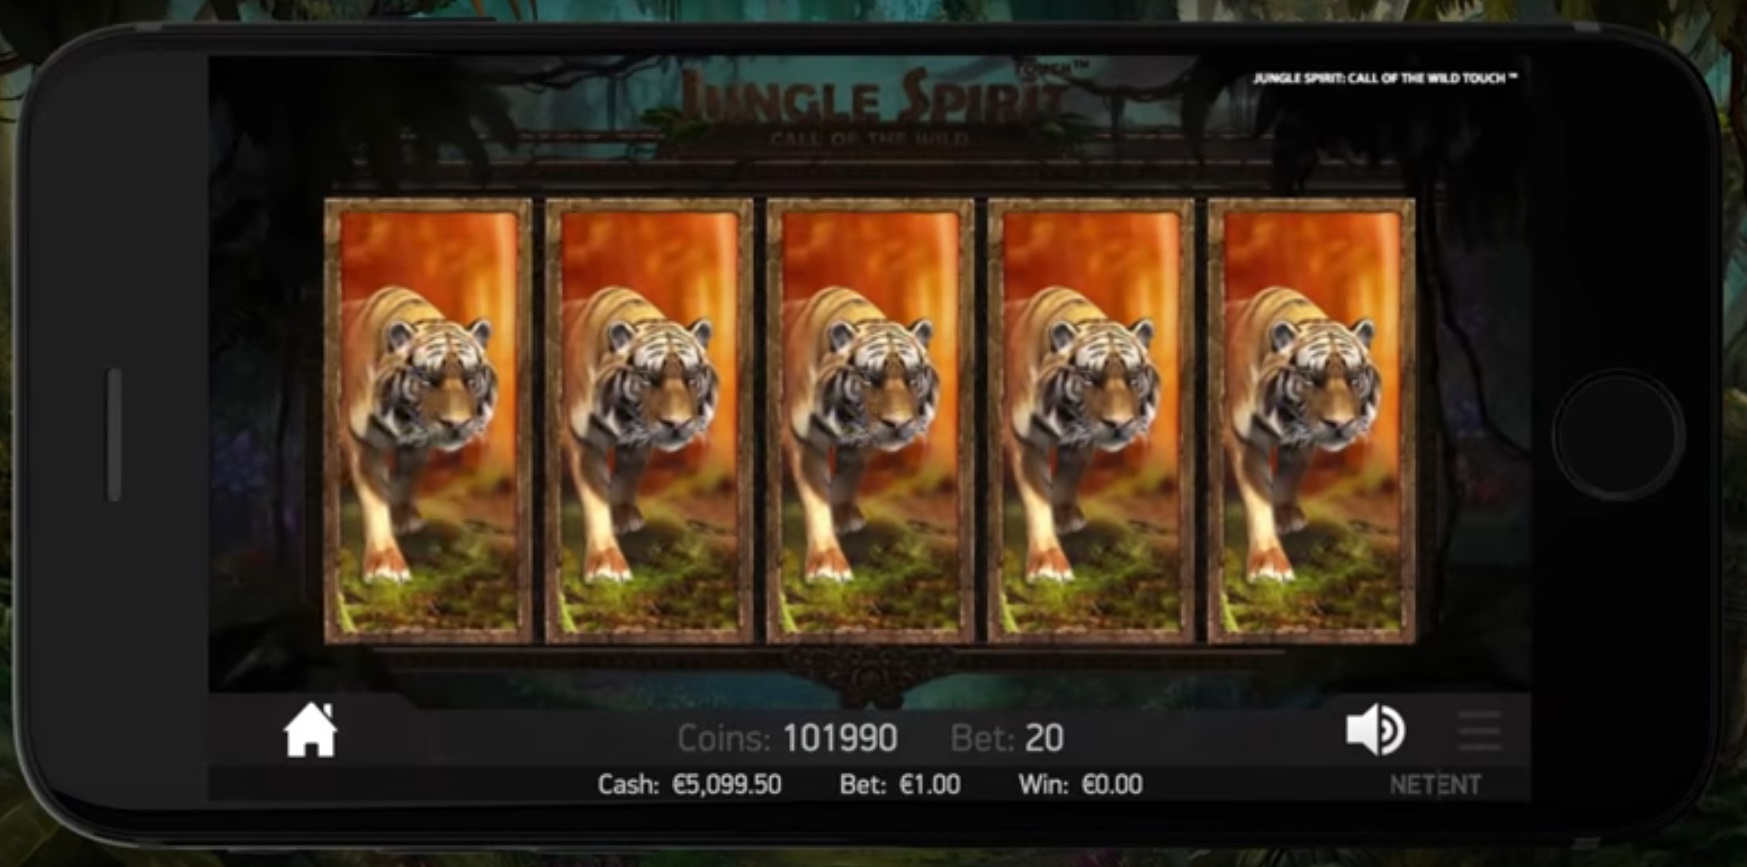 jungle spirit mobiel